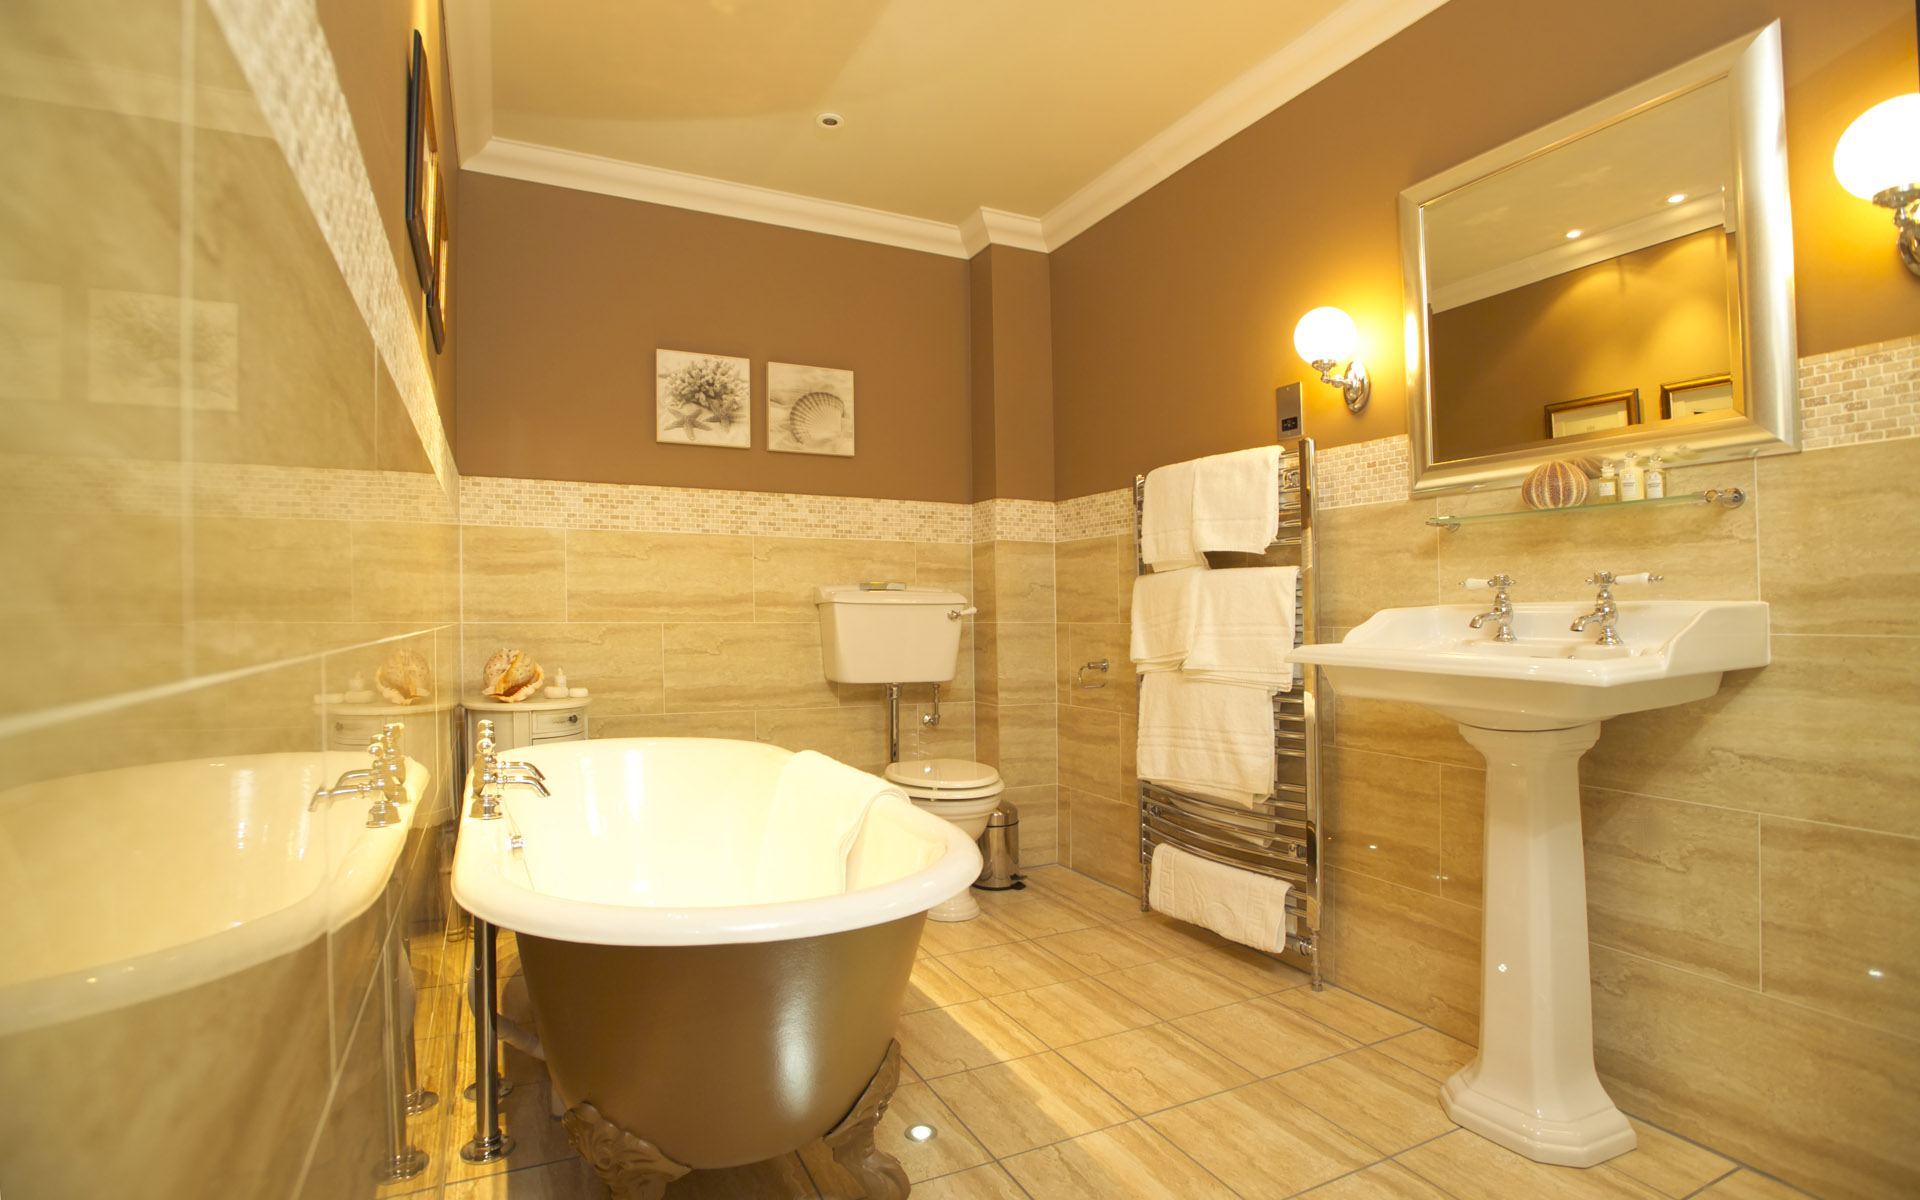 Bathromm Interiors Decorators